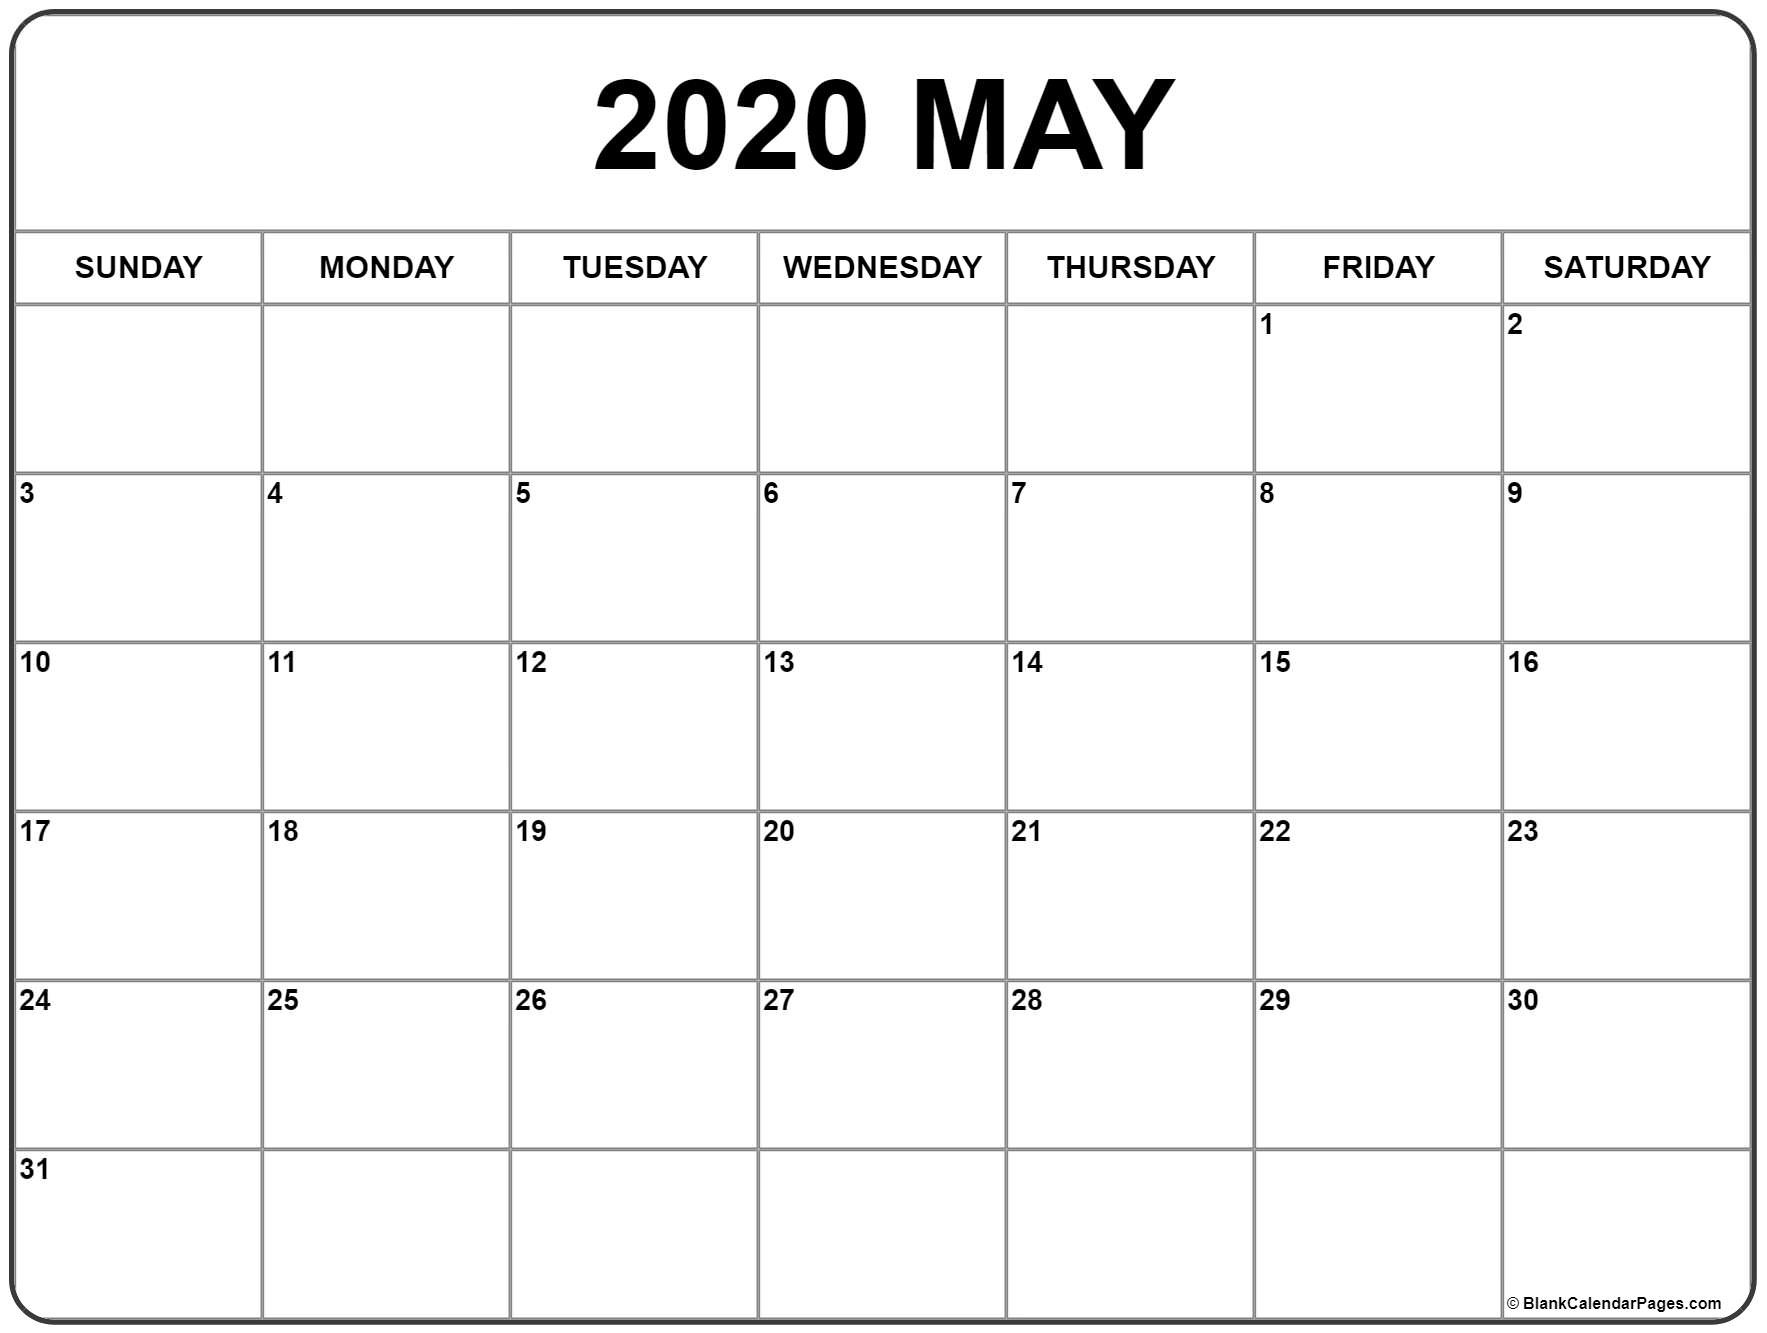 May 2020 Calendar | Free Printable Monthly Calendars  May 2020 Calendar Printable